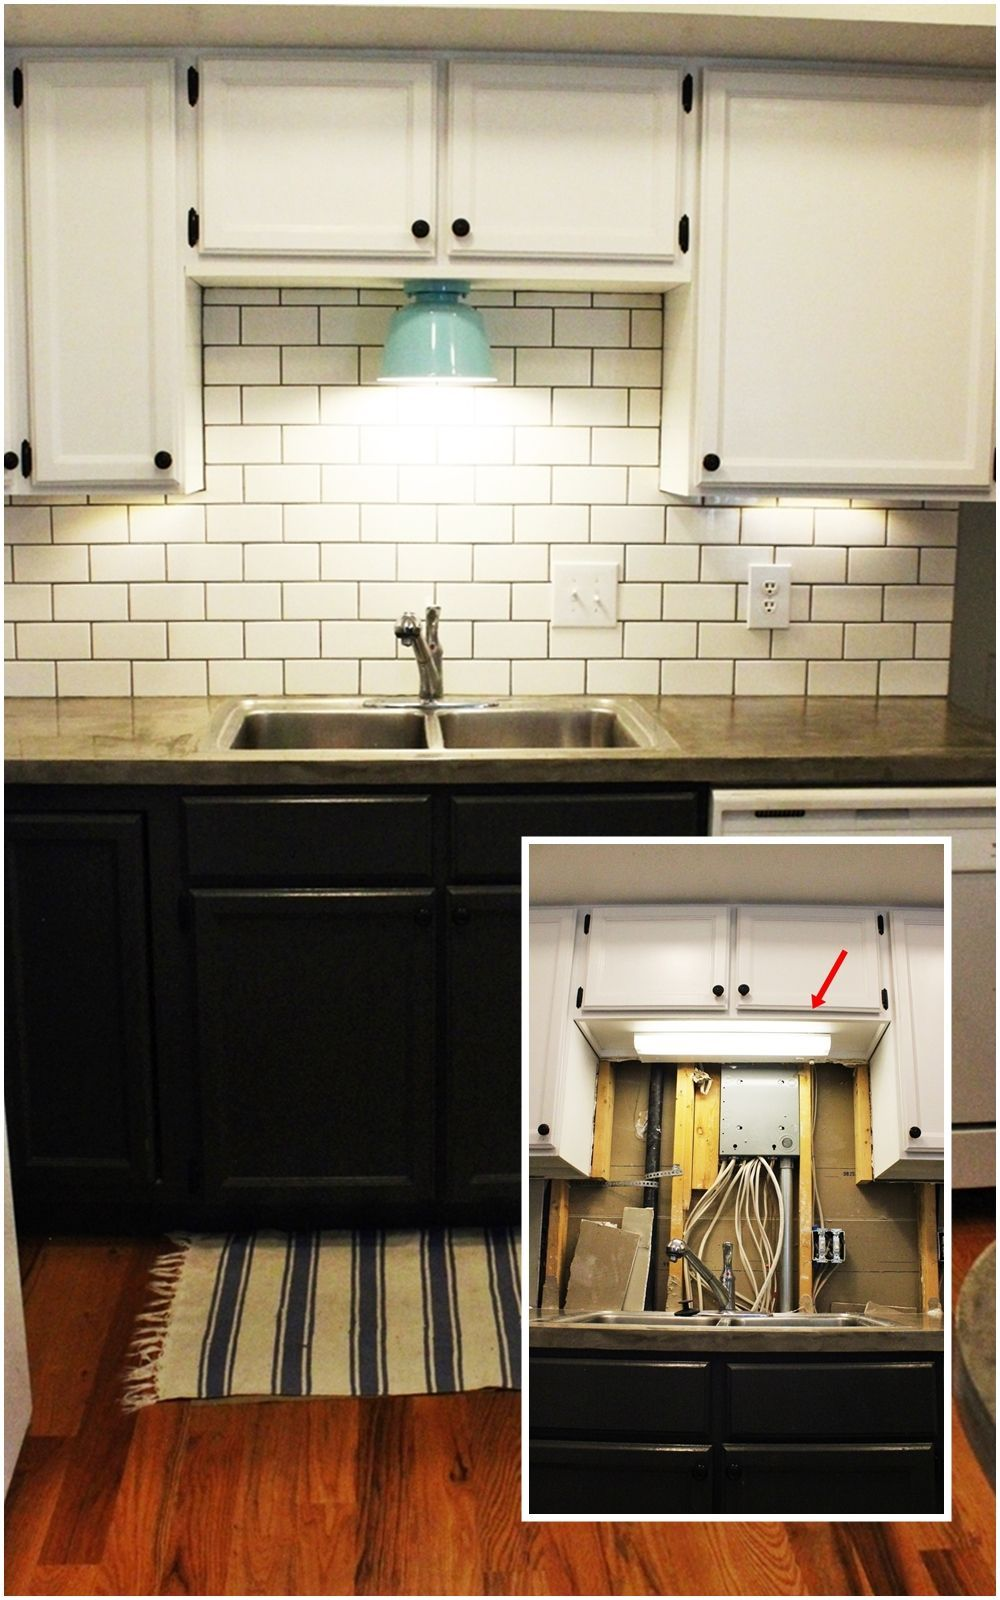 lighting for cabinets. diy kitchen lighting upgrade led undercabinet lights u0026 abovethesink light for cabinets